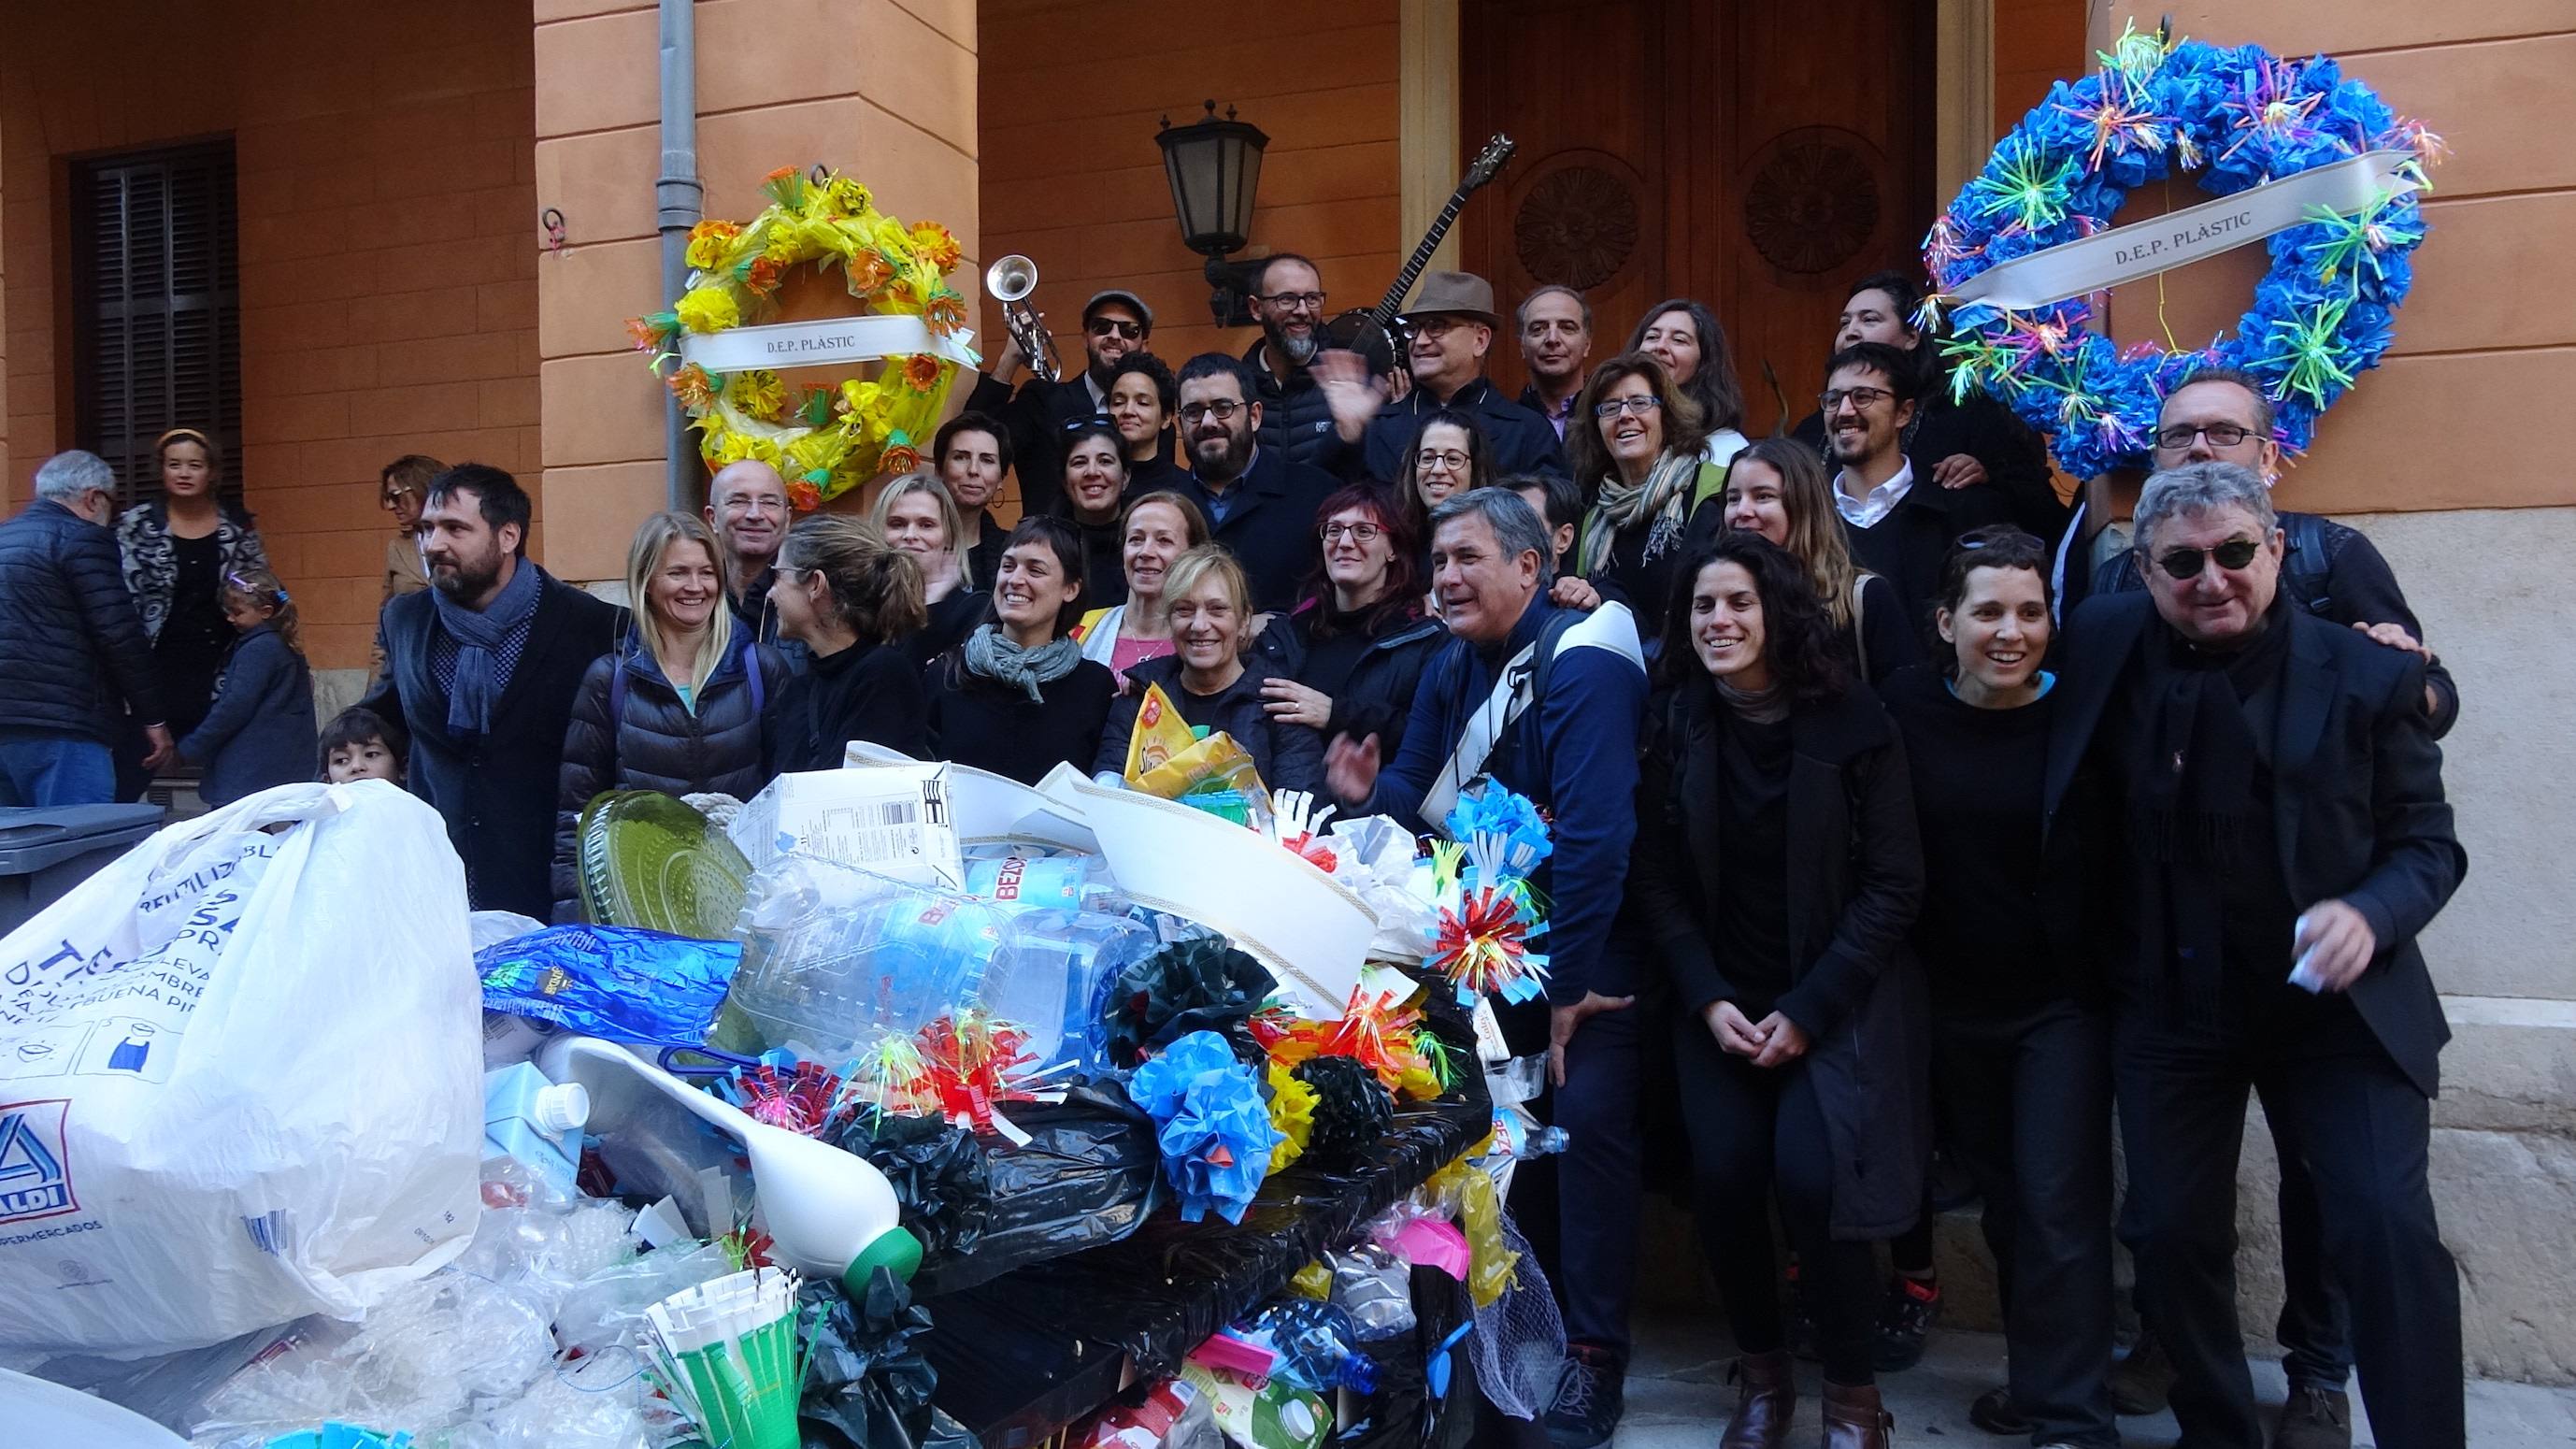 spanish people surrounding the the car with lots of flowers and plastic waste on it